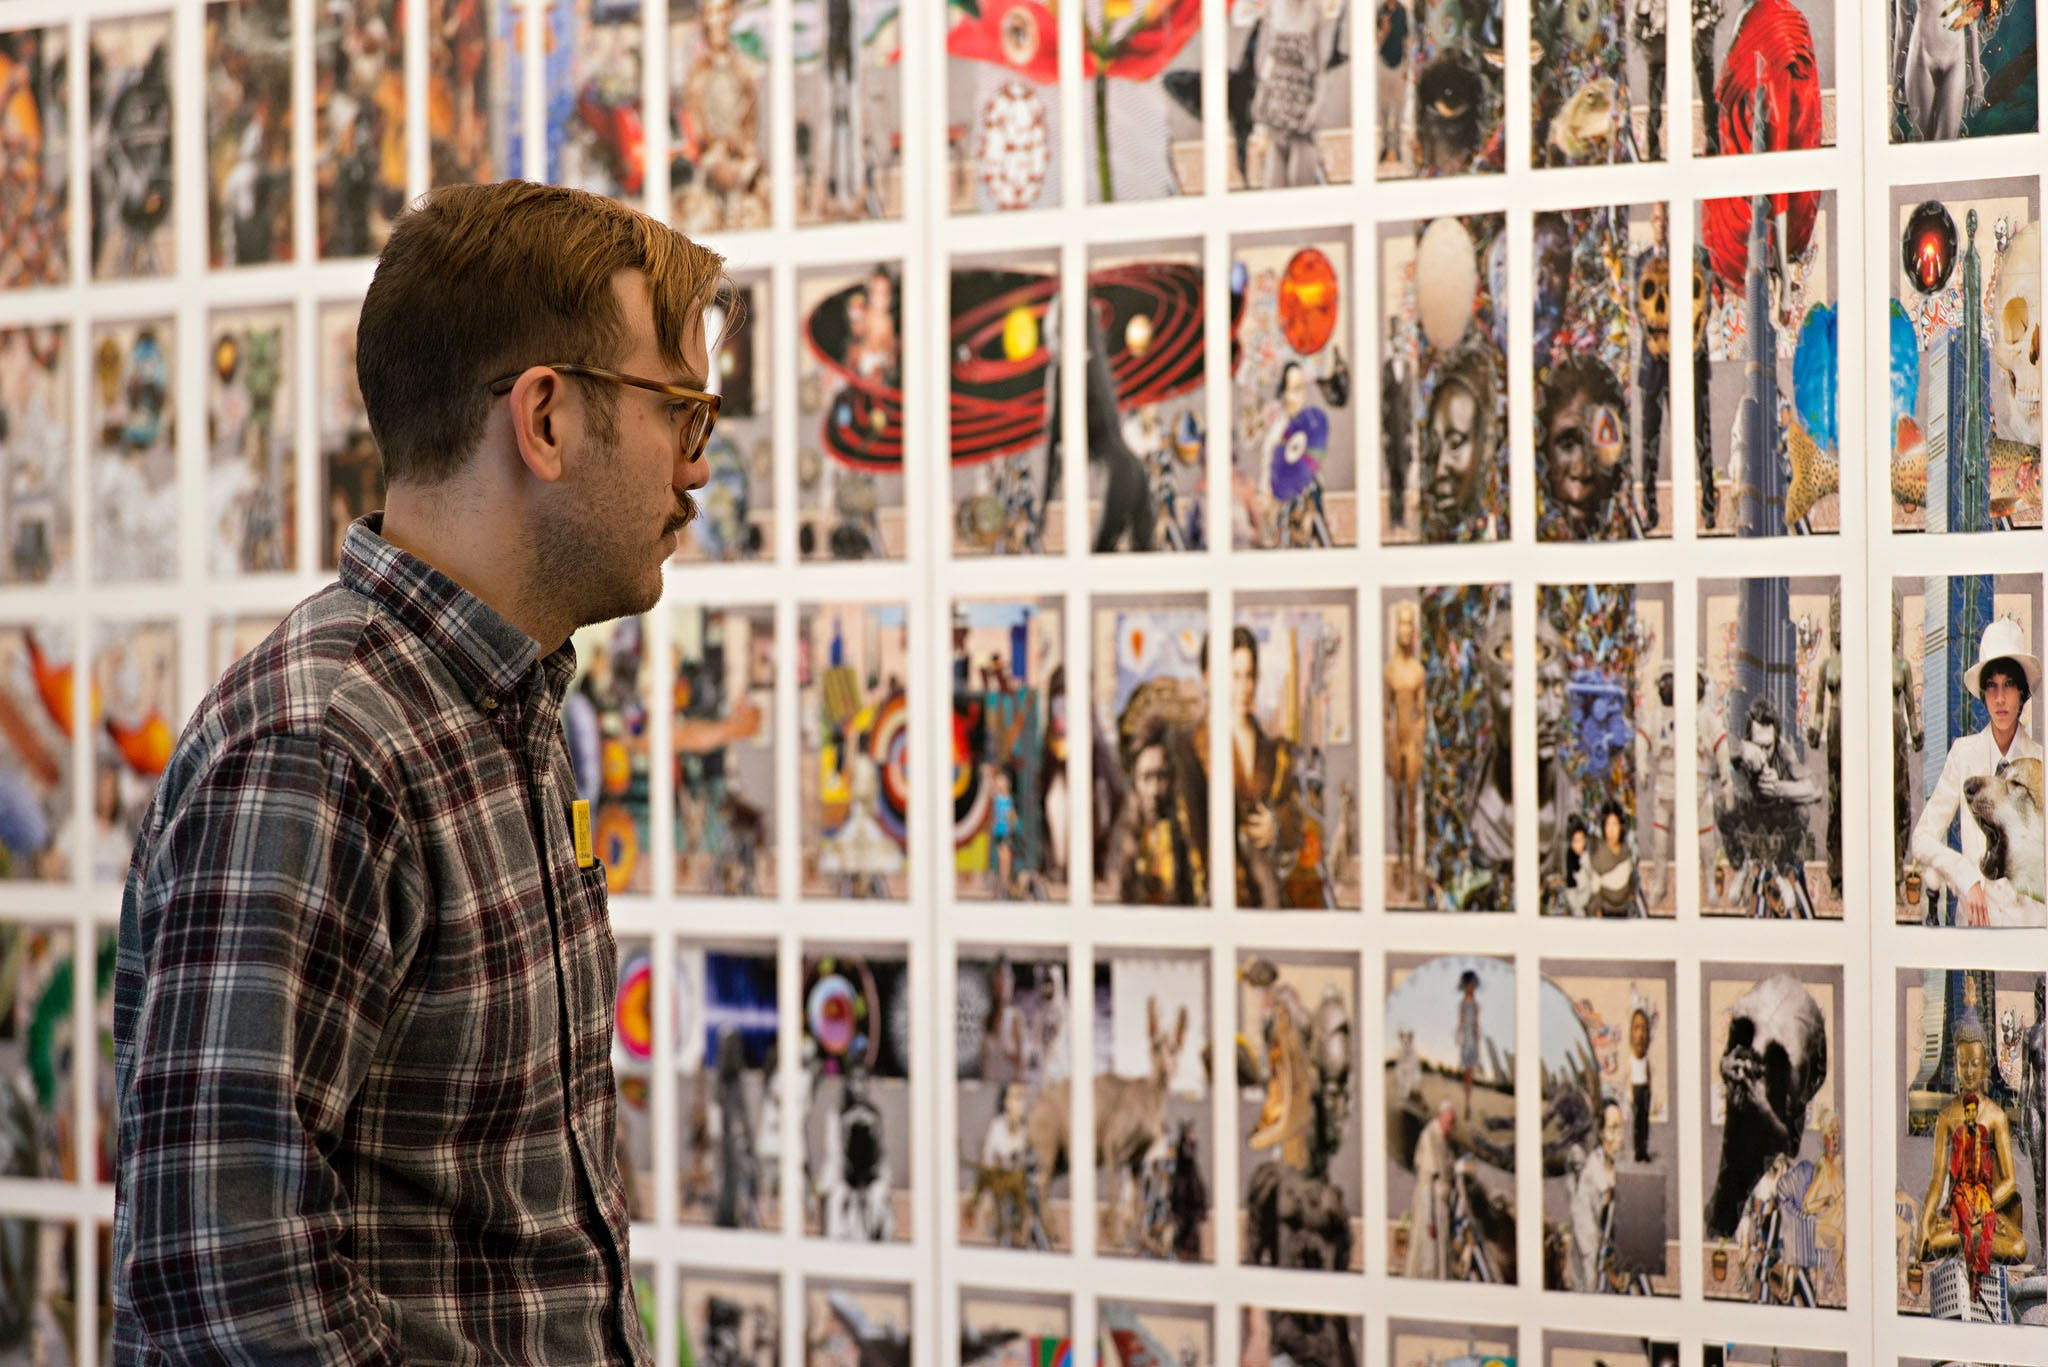 Man in plaid shirt looking at Frank Big Bear collage on wall.